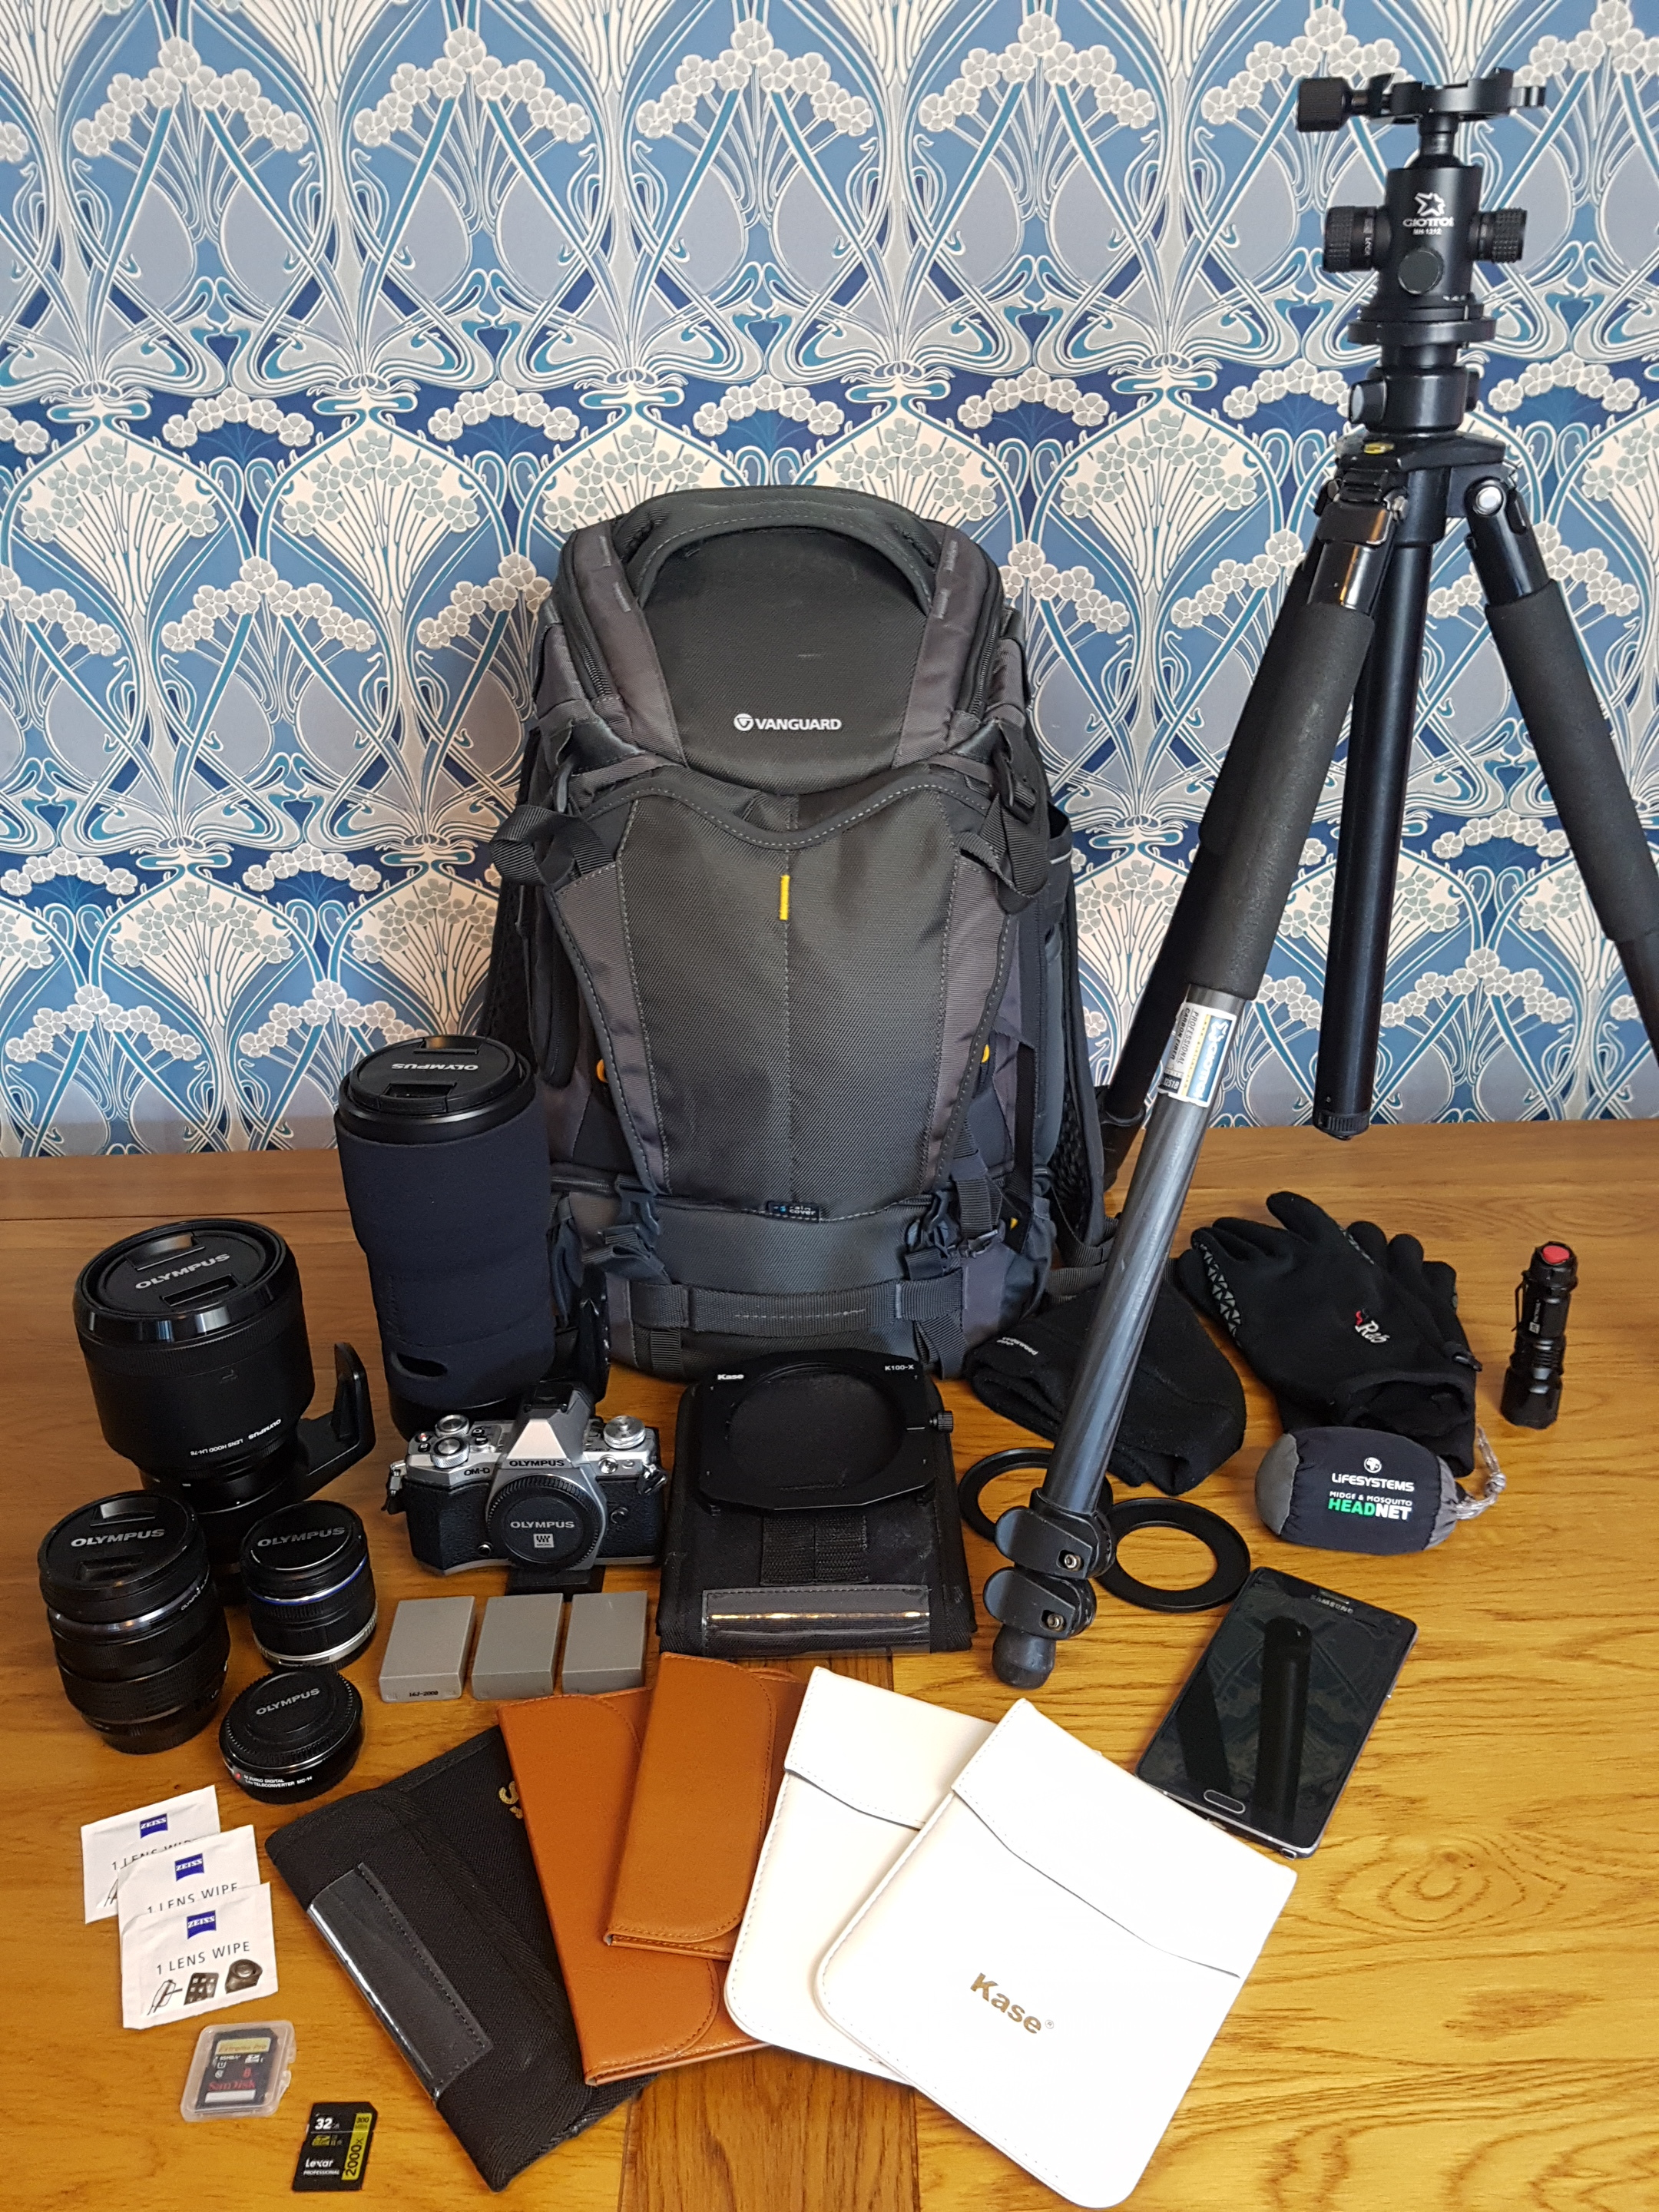 - Camera- Olympus OMD Em5 mk2Lenses - Olympus 9-18mm        Olympus 12-40mm 2.8 pro        Olympus 40-150mm 2.8 pro        Olympus 300mm f.4 pro        Olympus x1.4 teleconverterFilter Kit - Kase K100-x holder and polarizer, Range of ND Graduated filters, range of full ND filtersSpare BatteriesLens wipesSpare memory cardsMobile PhoneHat, gloves and headnettorchGiottos tripod and ball head